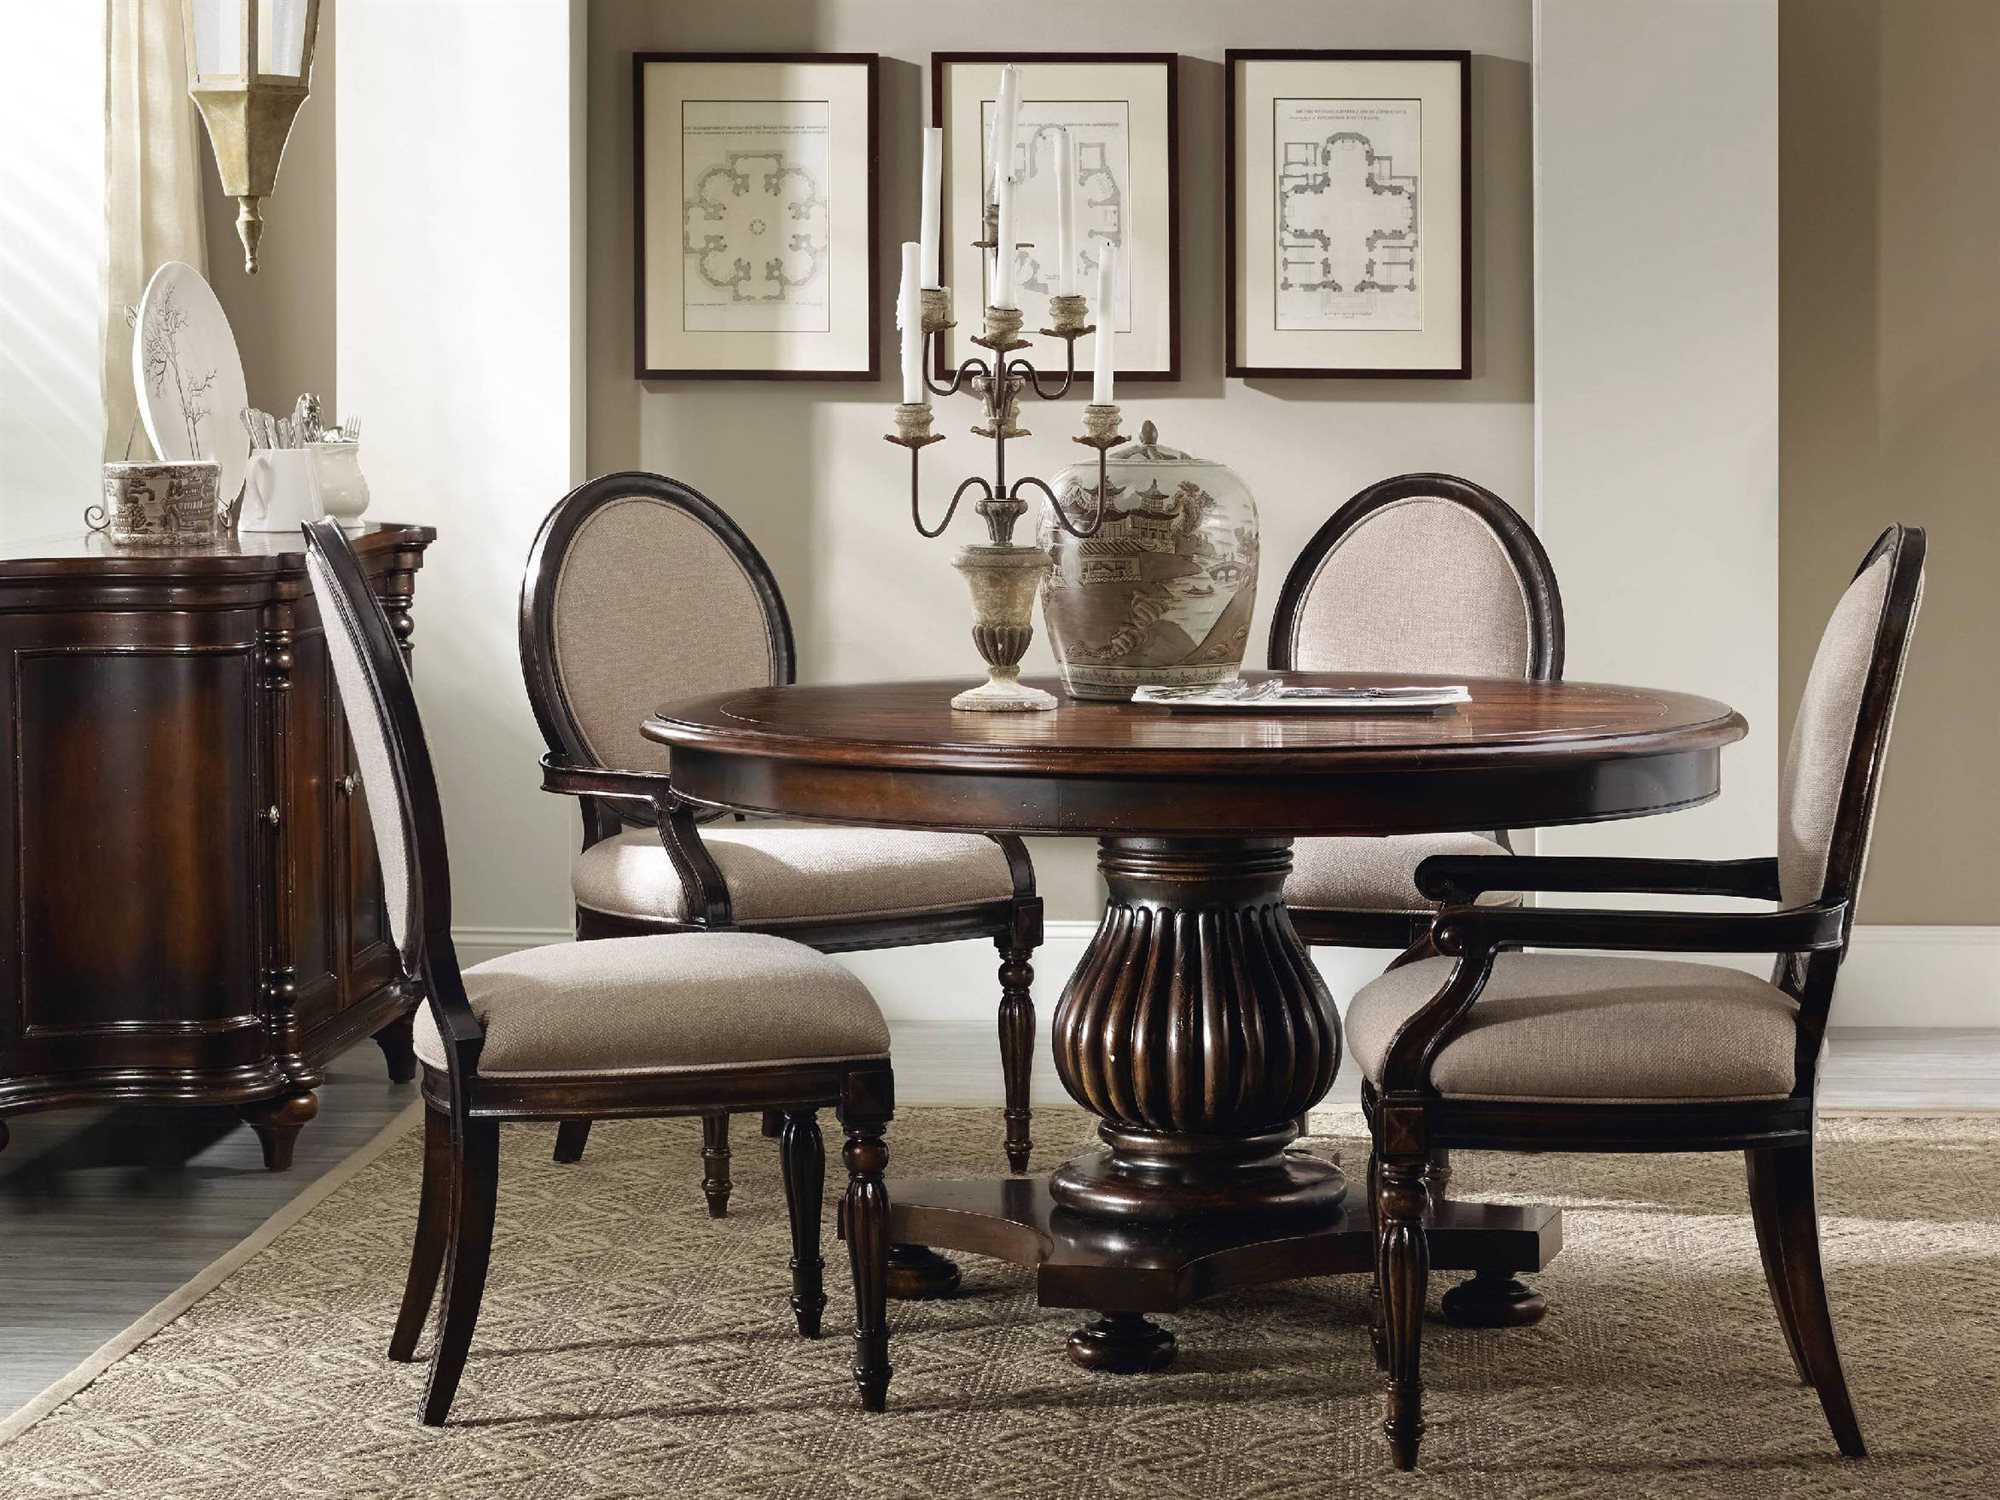 hooker furniture eastridge dining room set hoo517775206set